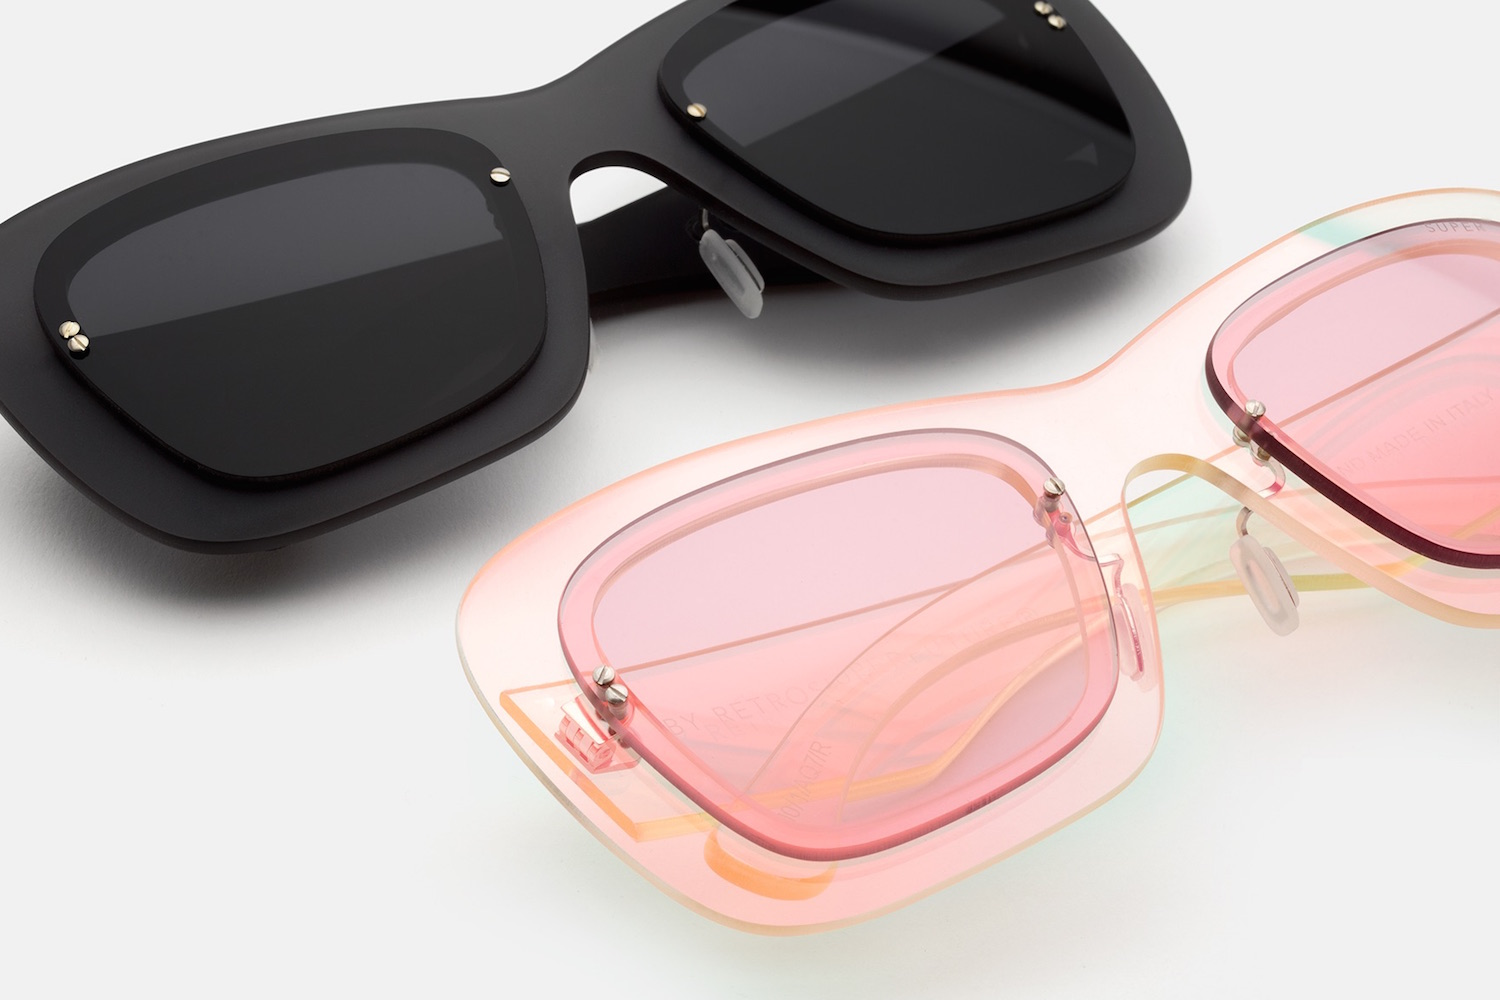 RETROSUPERFUTURE Releases Sunglasses That Feature a 90s-Twist